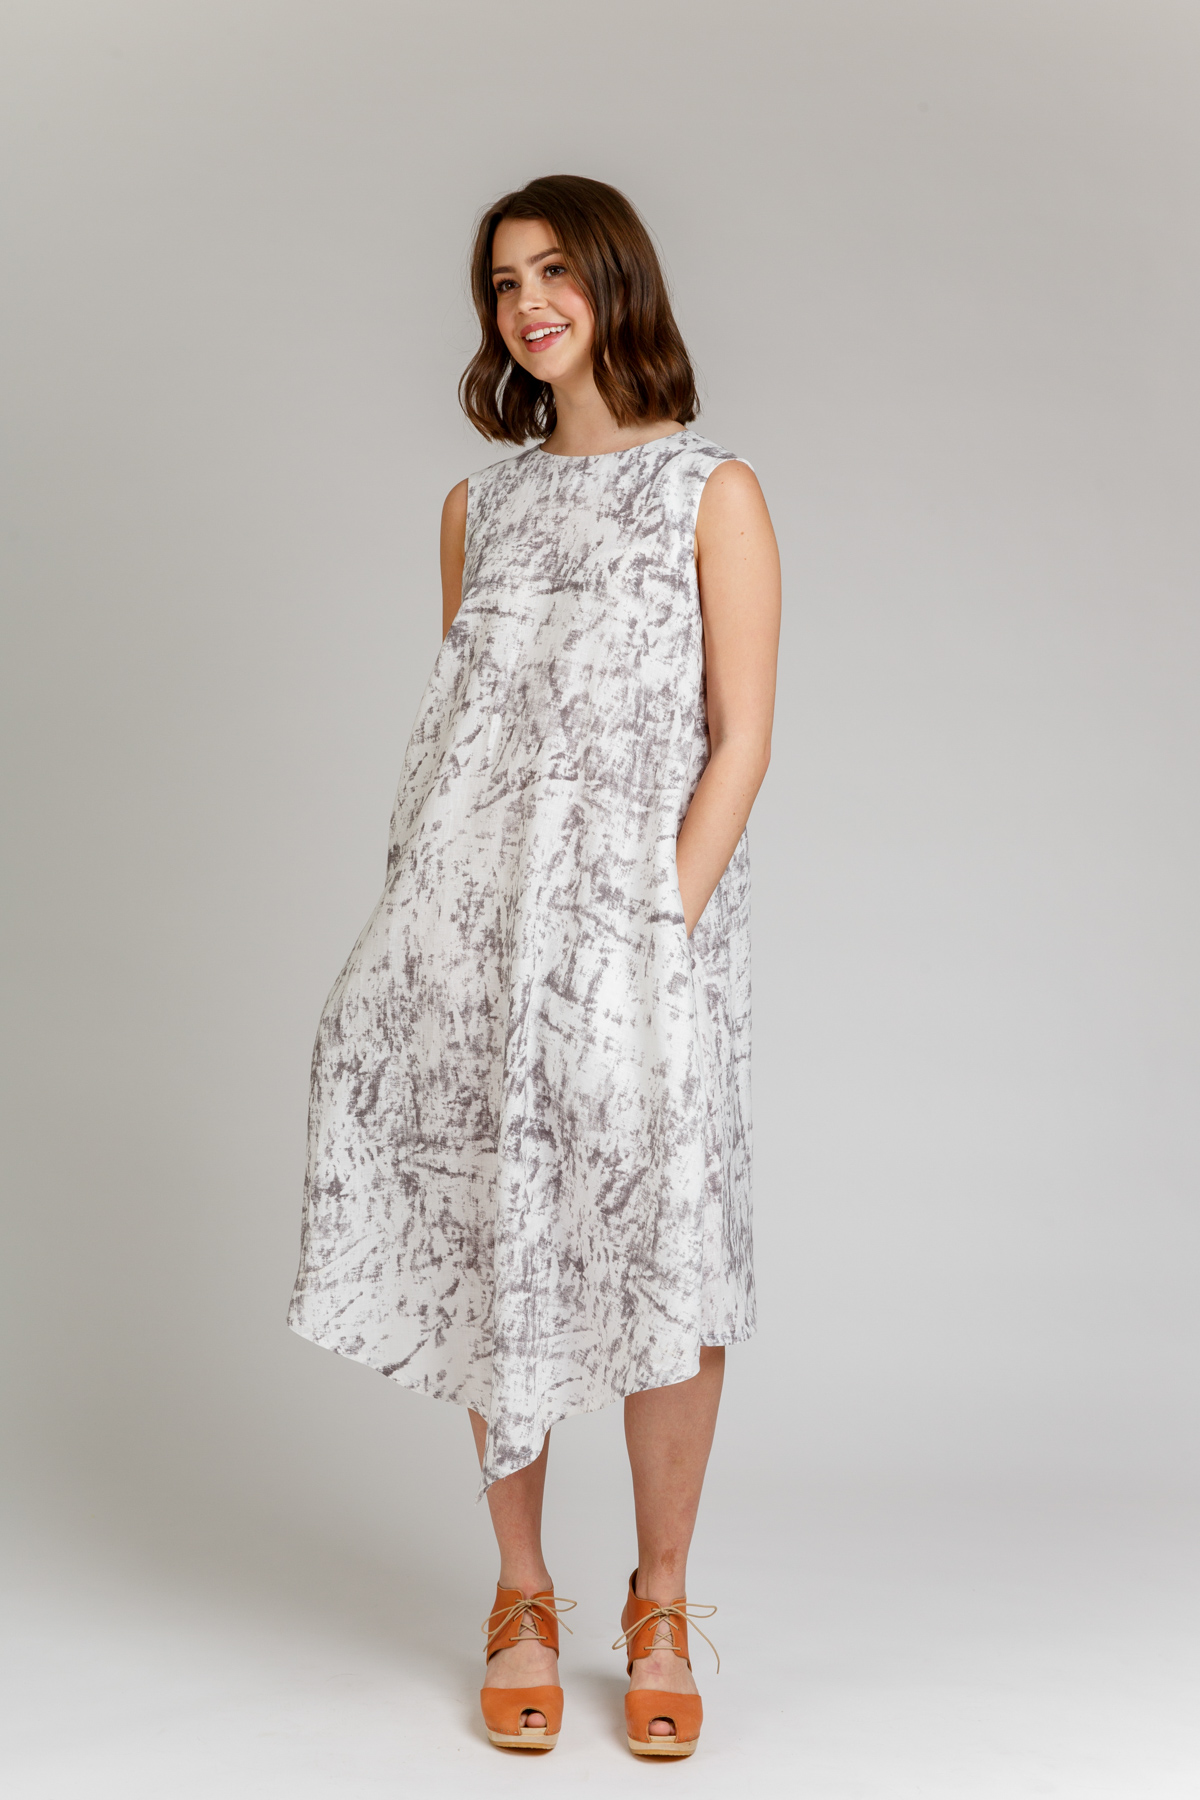 Megan Nielsen Floreat dress & top sewing pattern // jammed packed with included options this pattern can be sewn in woven or knit fabrics, includes multiple facings, sleeves, and hemline options.